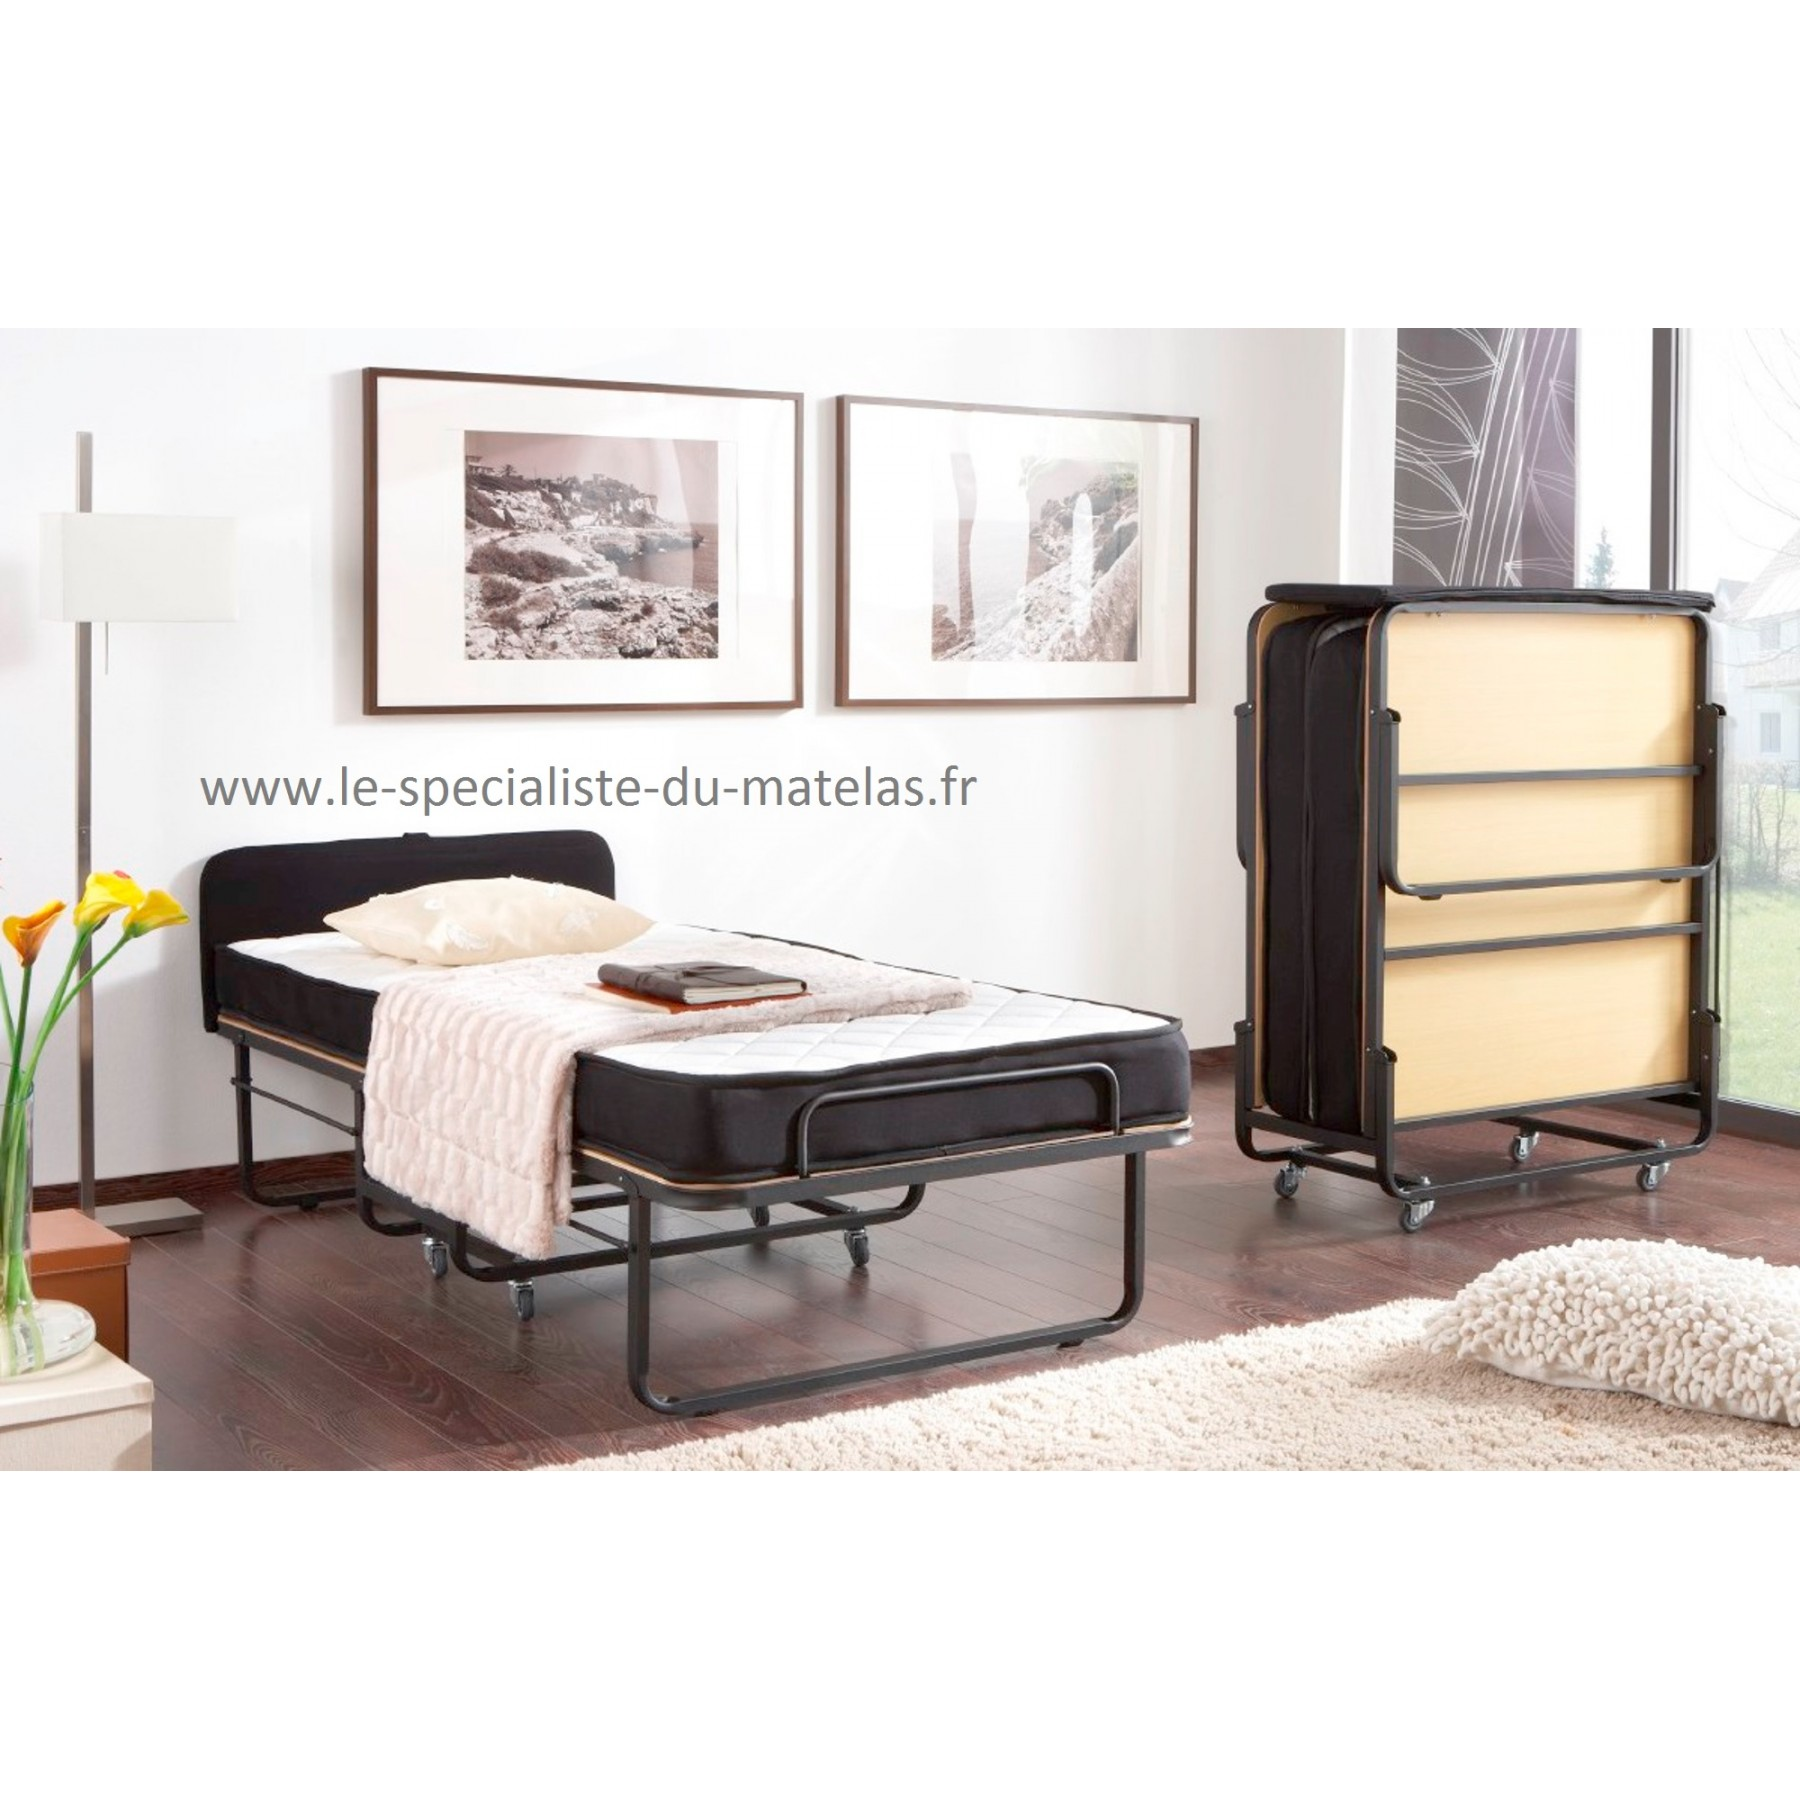 caisson tete de lit brimnes cadre de de lit with caisson tete de lit affordable support vasque. Black Bedroom Furniture Sets. Home Design Ideas